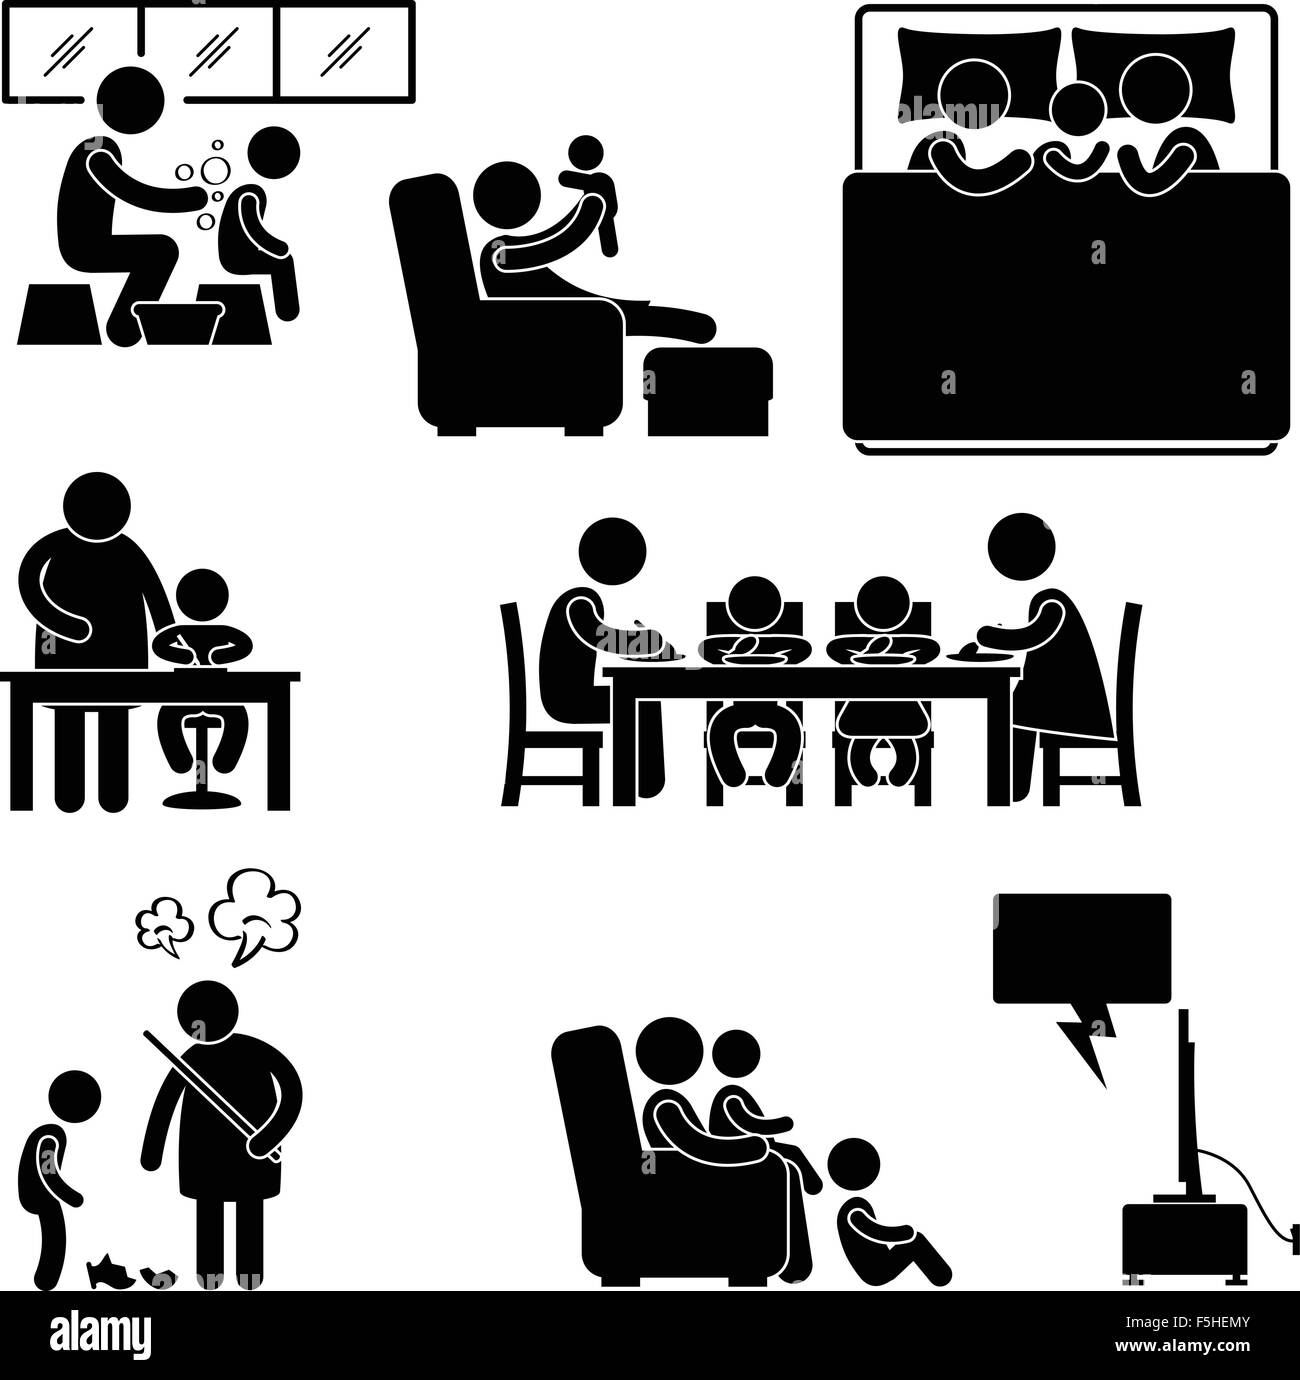 Family Activity House Home Bathing Sleeping Teaching Eating Watching Tv Together Icon Symbol Sign Pictogram - Stock Image